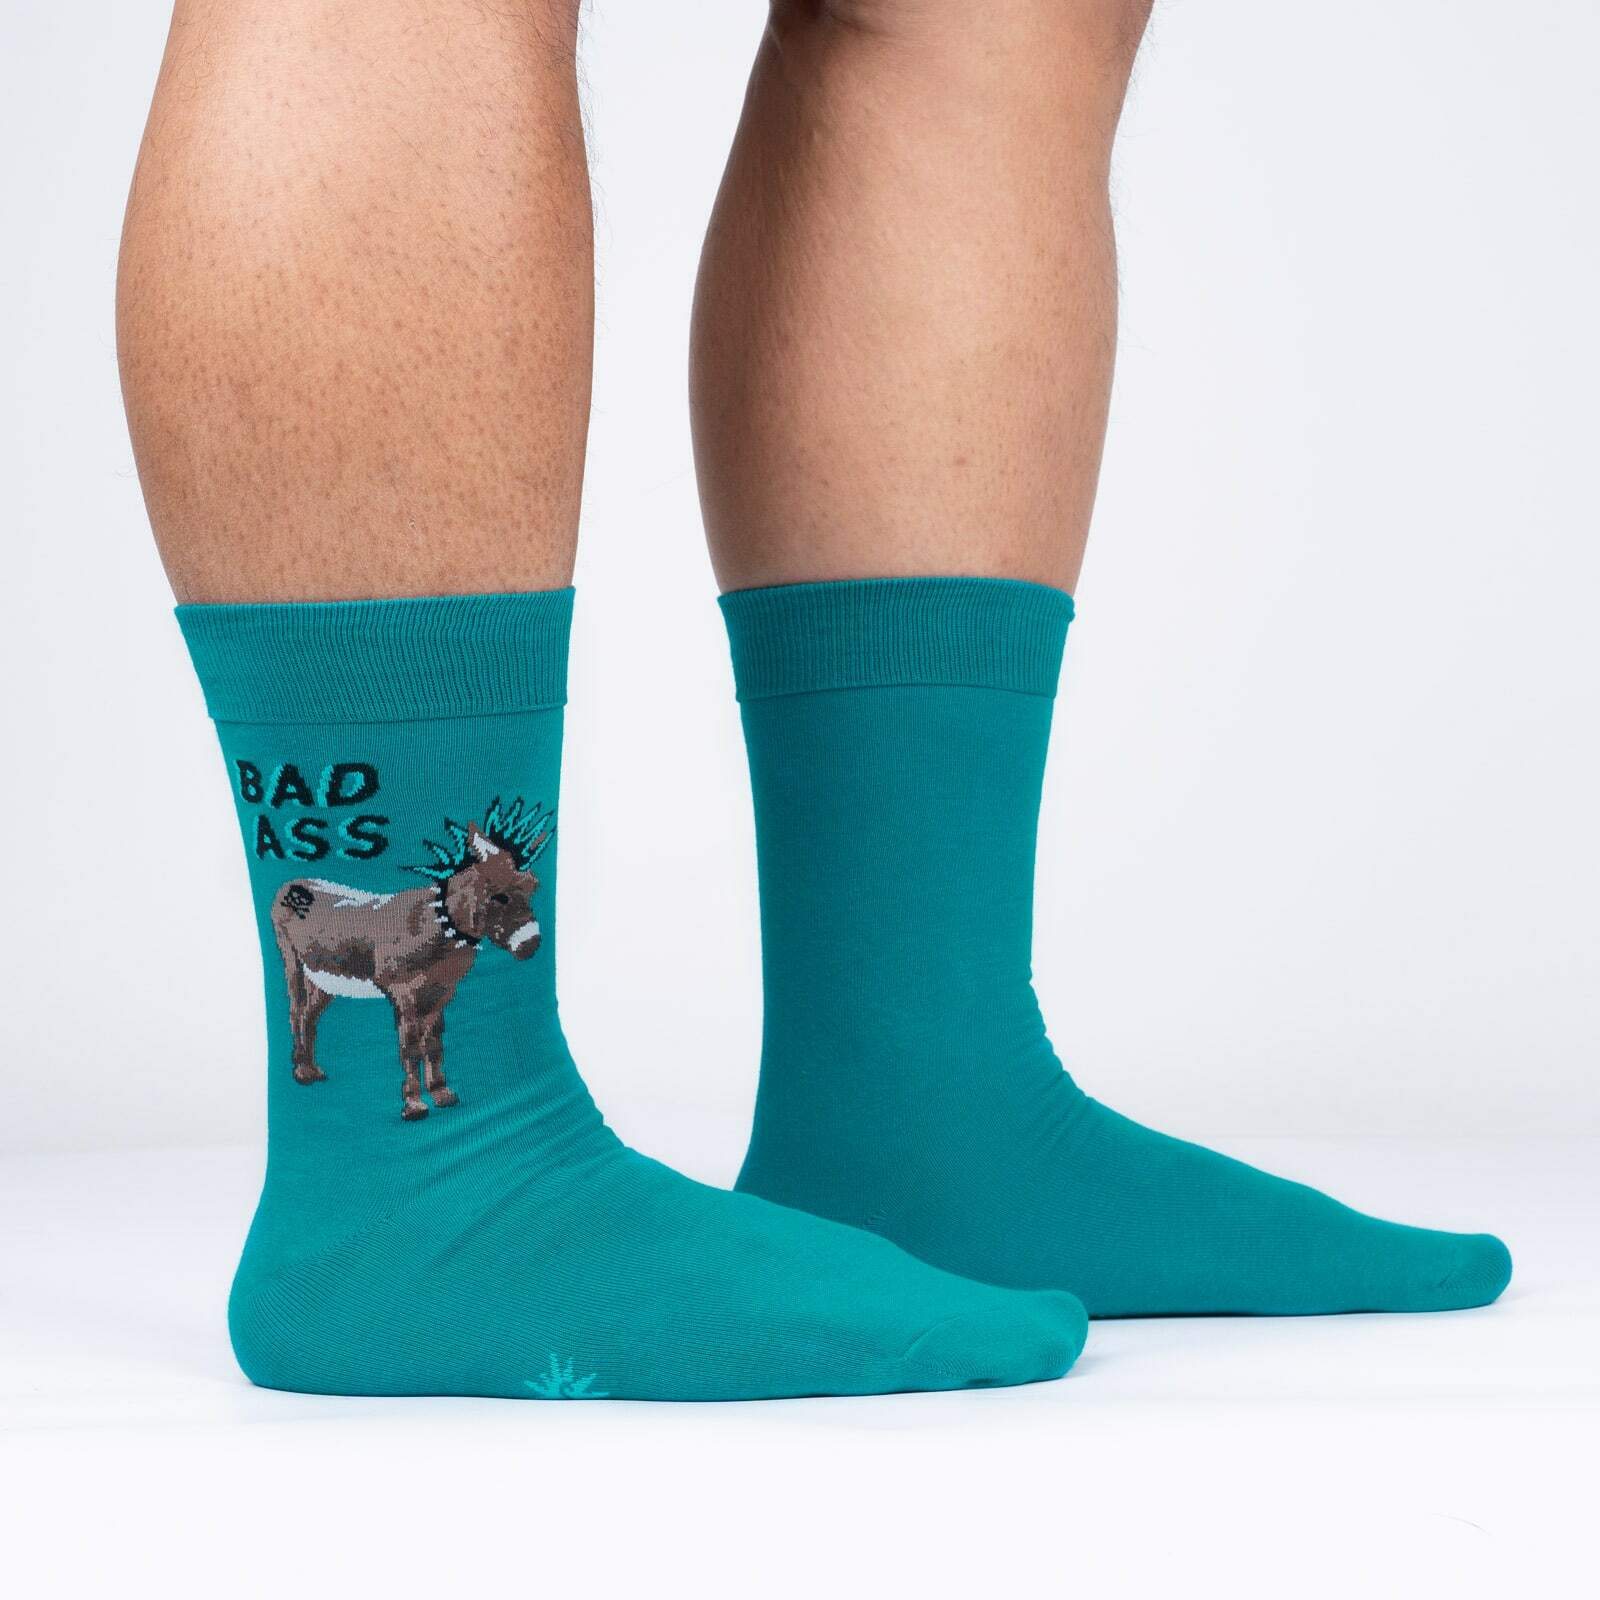 model side view of A Real Bad Ass - Funny Donkey Crew Socks - Men's